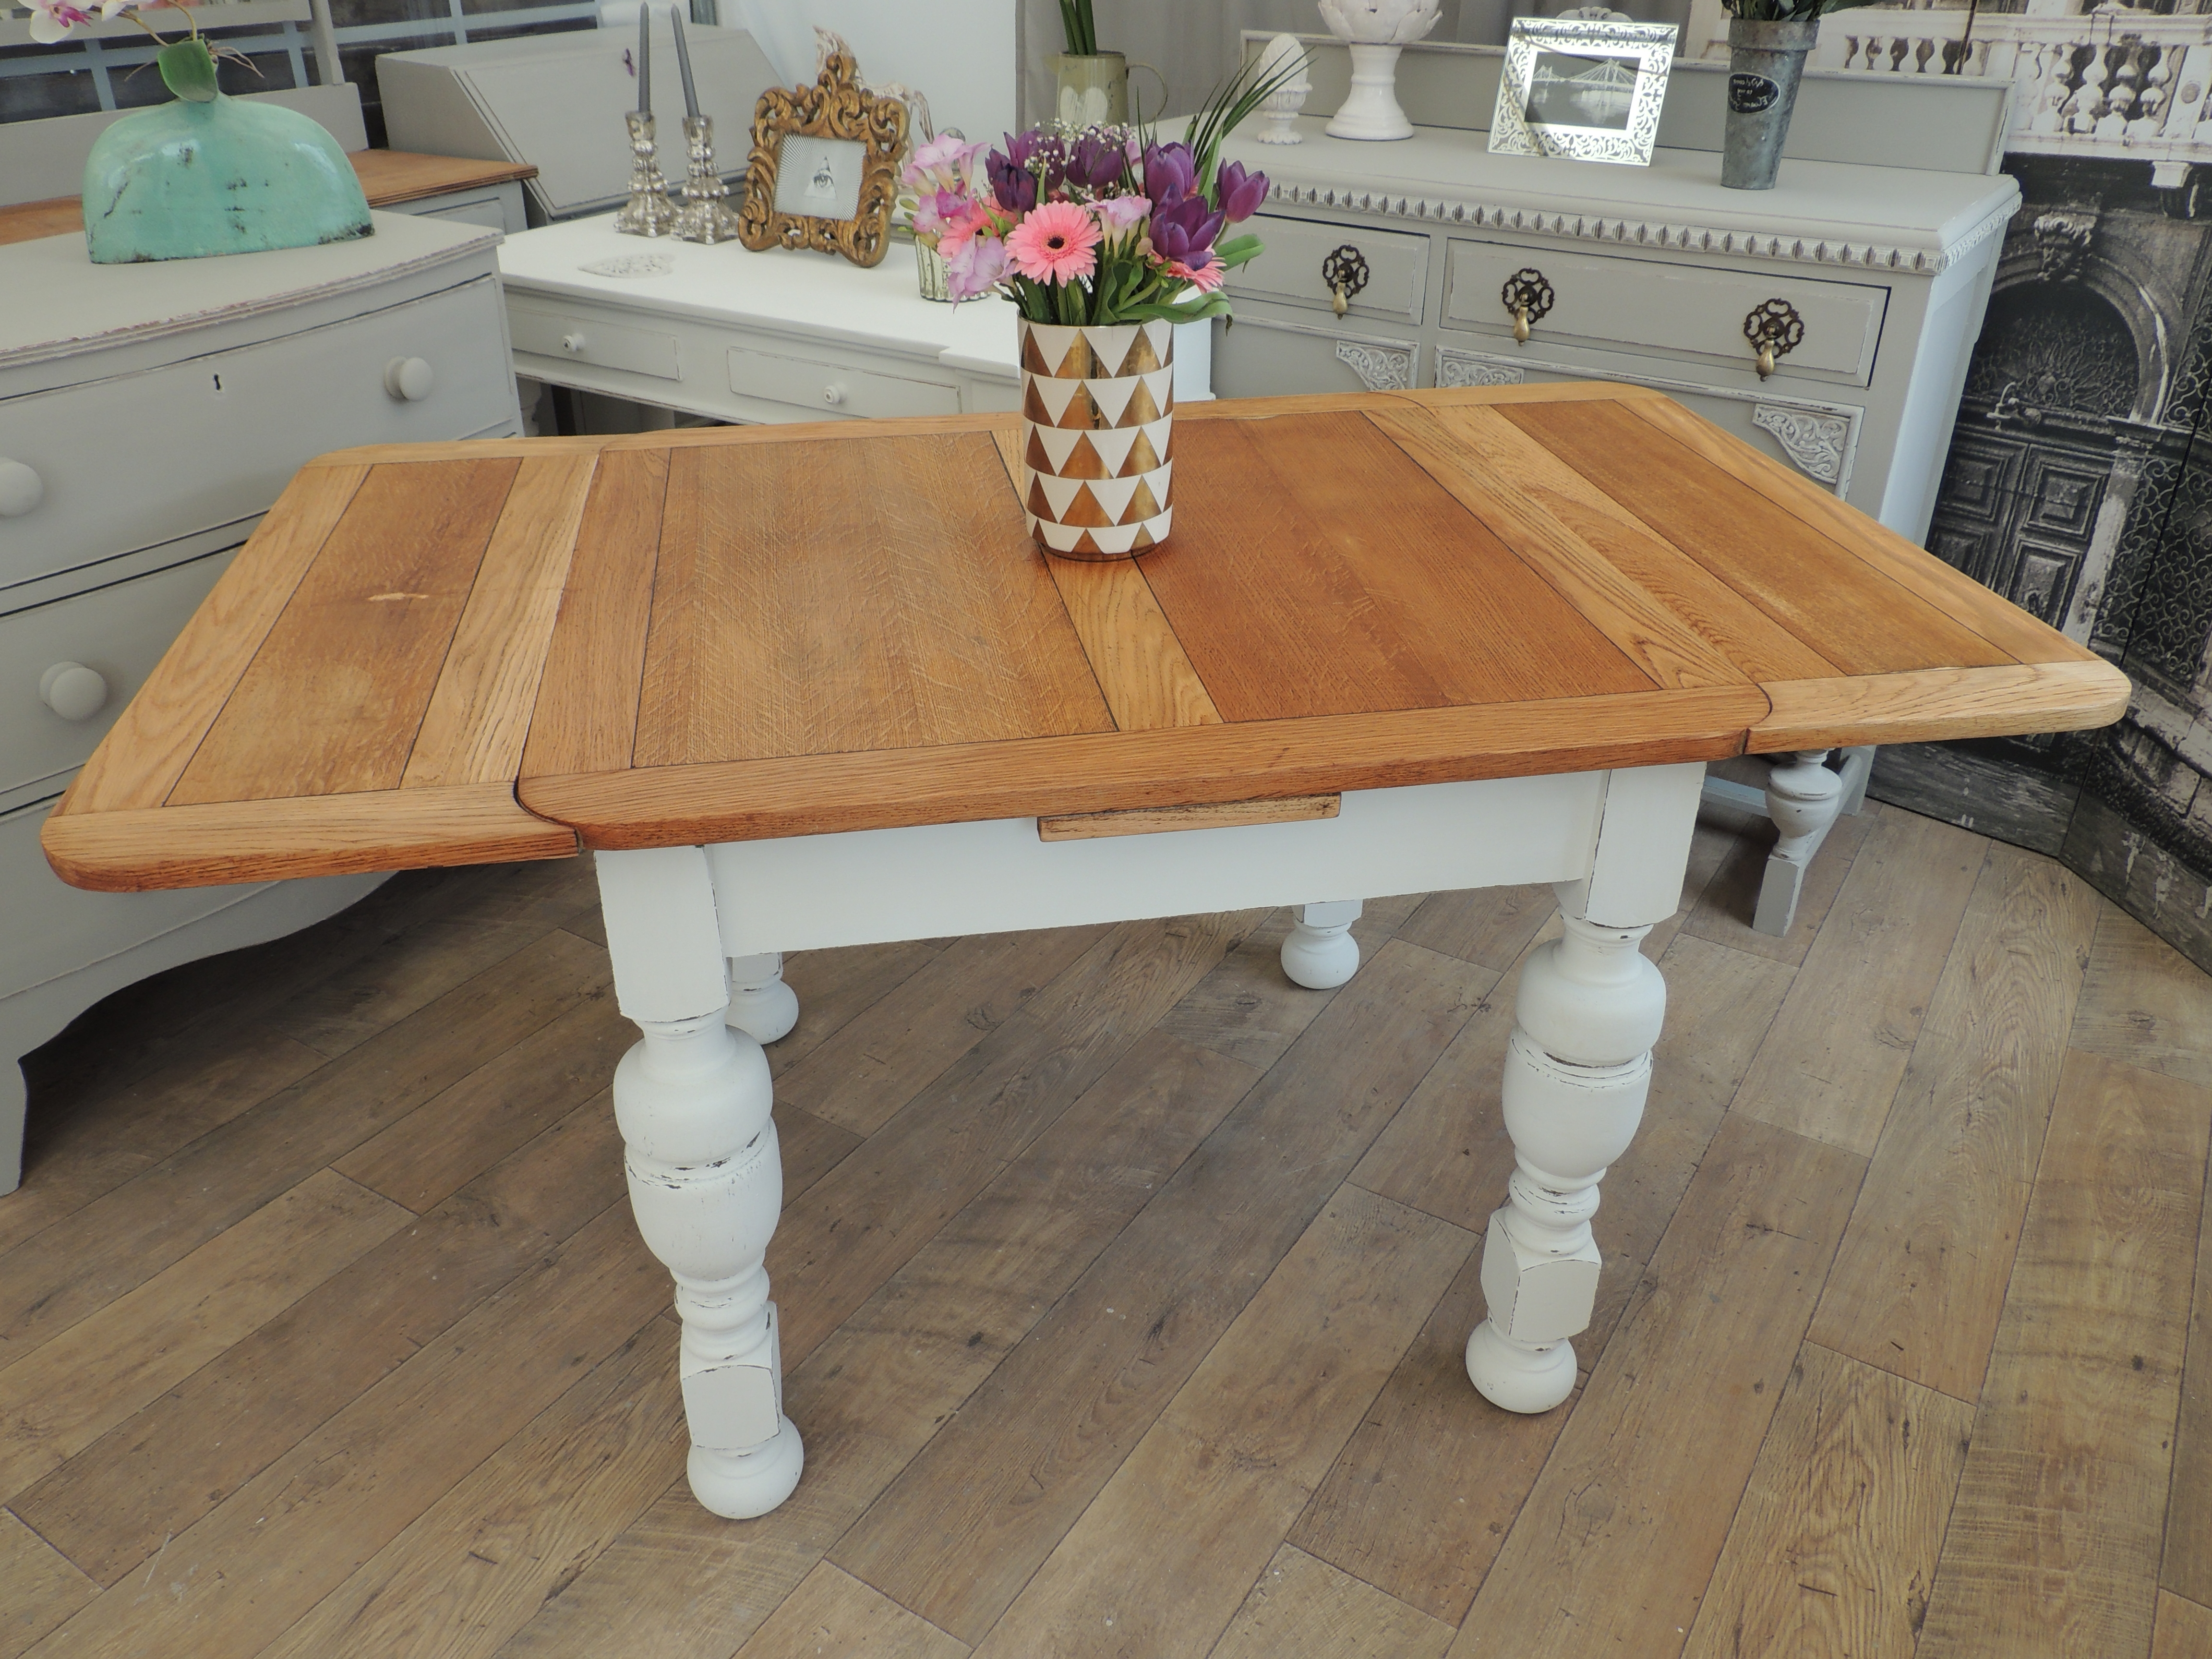 Most Popular Shabby Chic Oak Extendable Dining Table – Eclectivo London Regarding Shabby Chic Extendable Dining Tables (View 10 of 25)